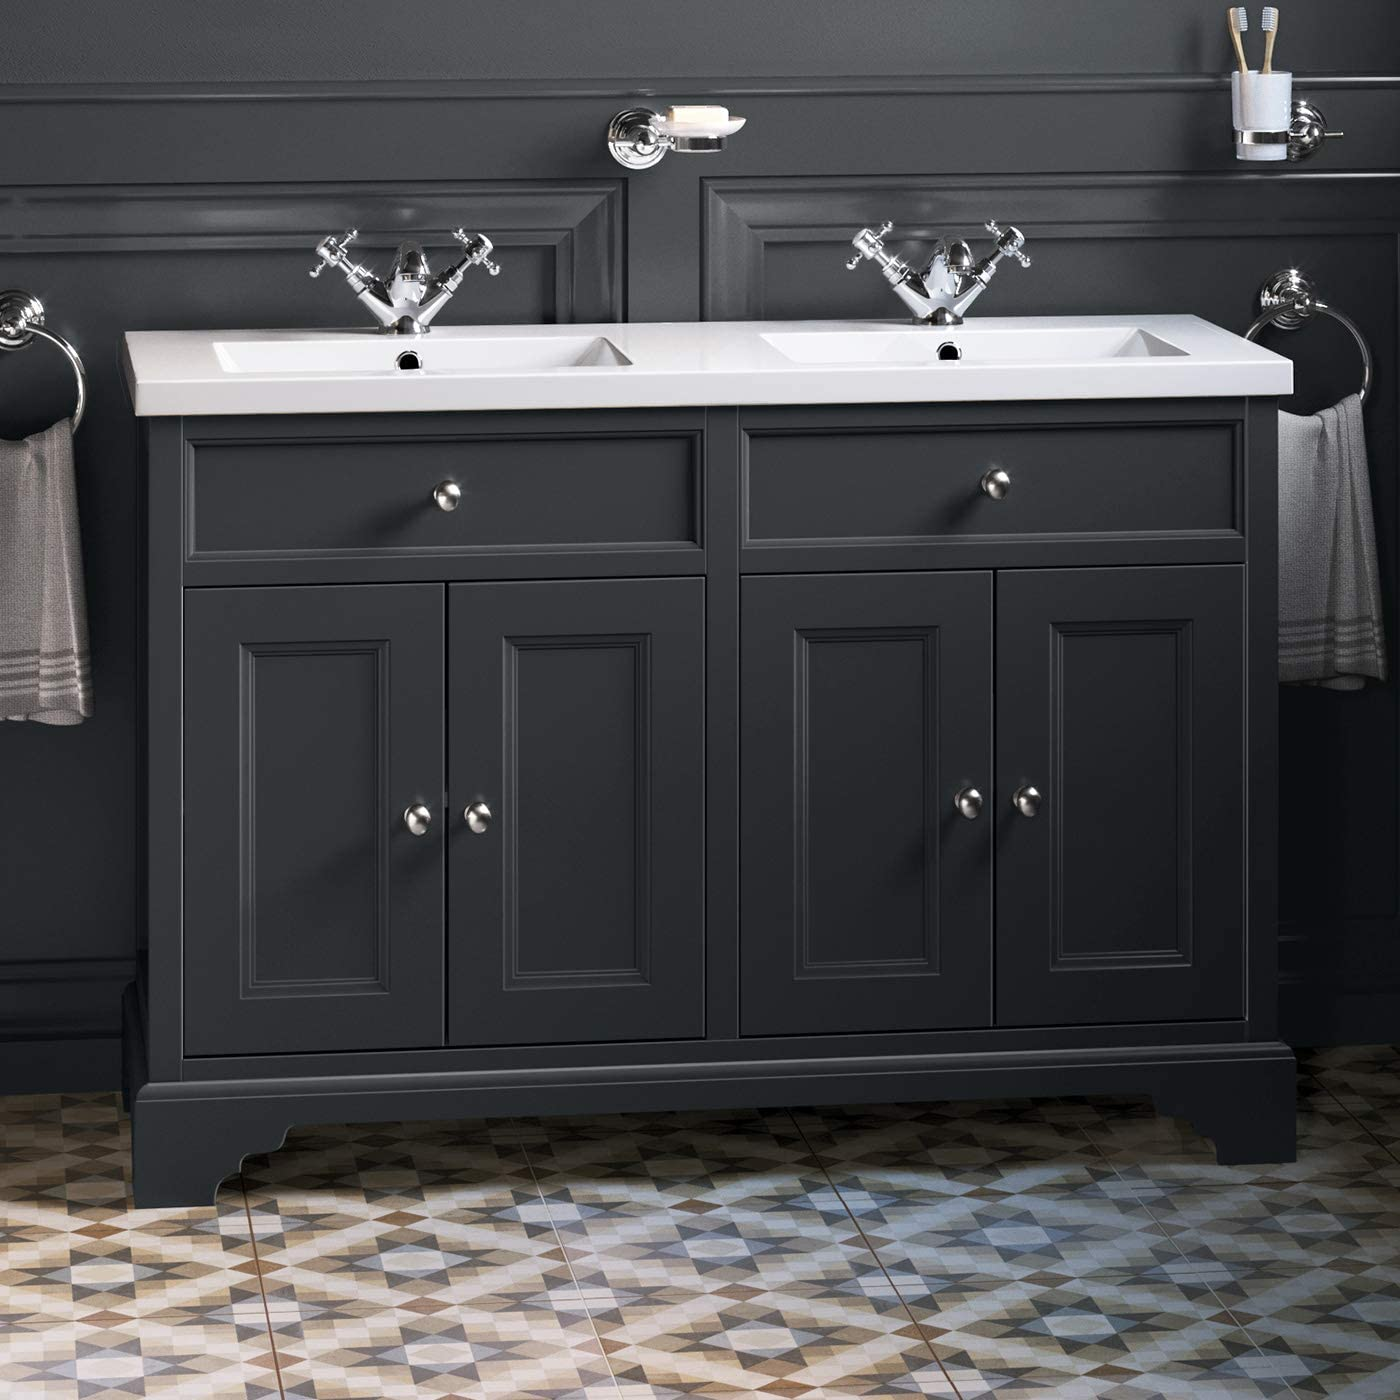 1200mm Loxley Charcoal Double Sink Vanity Unit Floor Standing Amazon Co Uk Kitchen Home